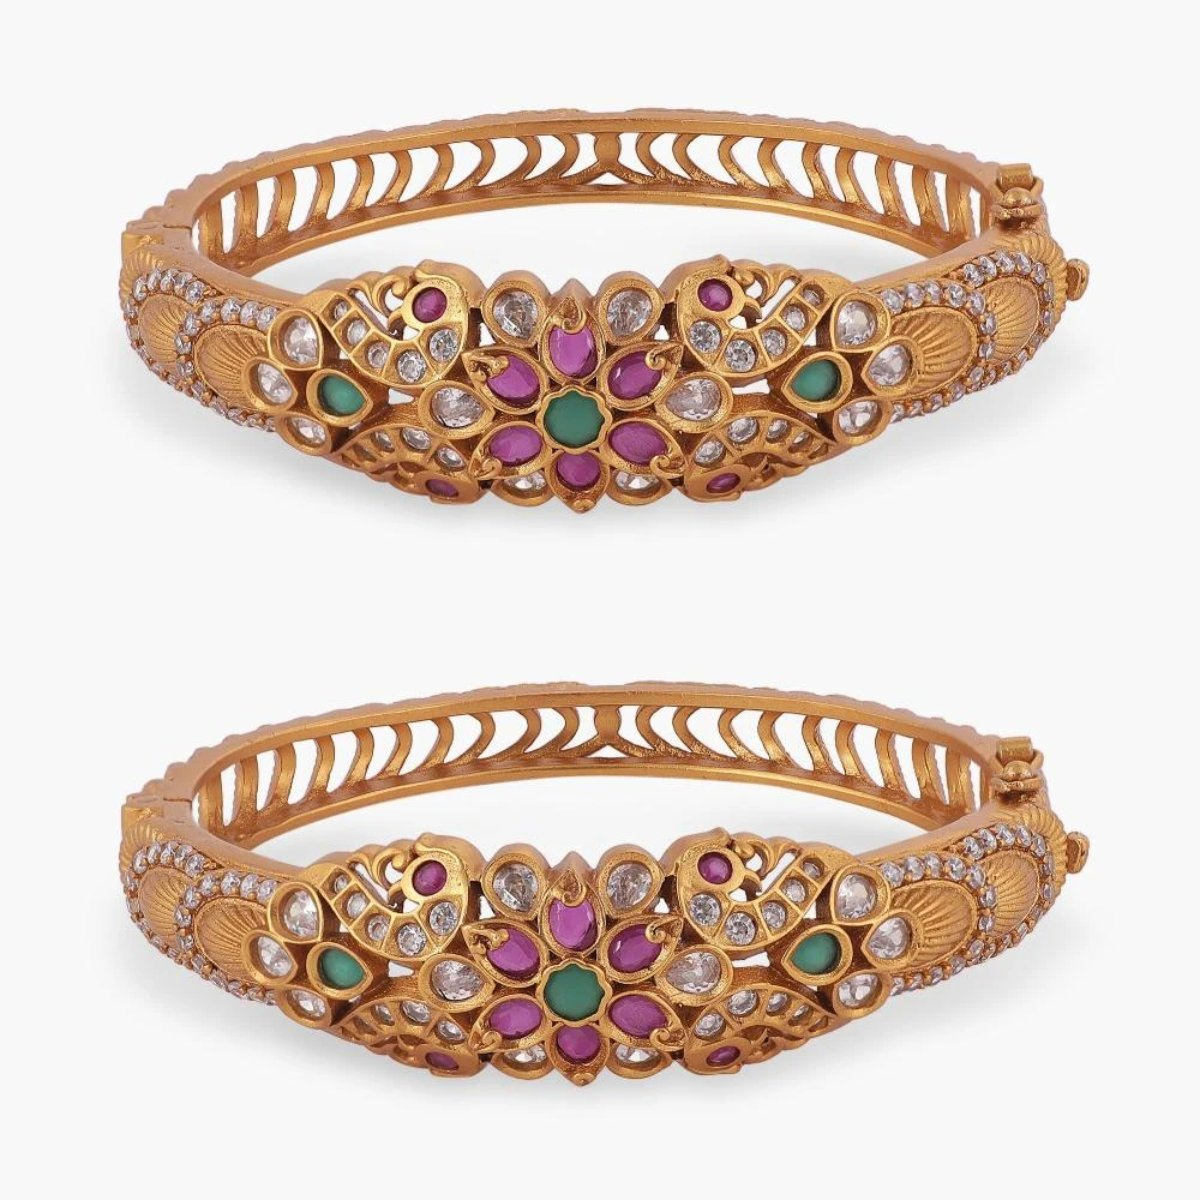 Sahi Antique Bangles